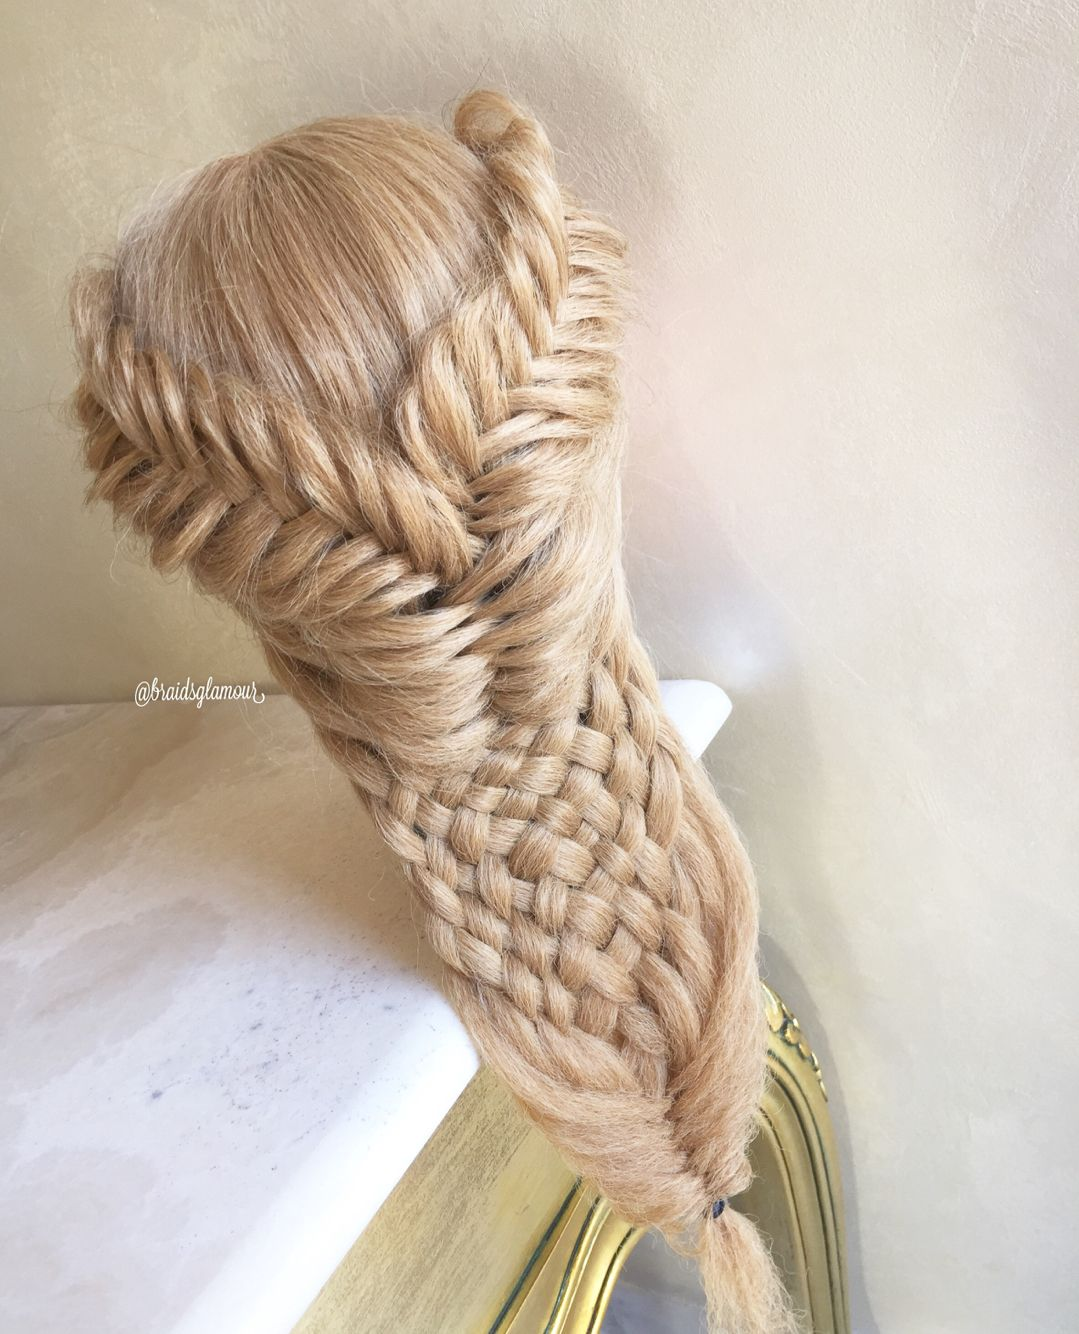 Long Hairstyles With Braids Fishtail Braids Woven Braid Hair Pinterest Fishtail